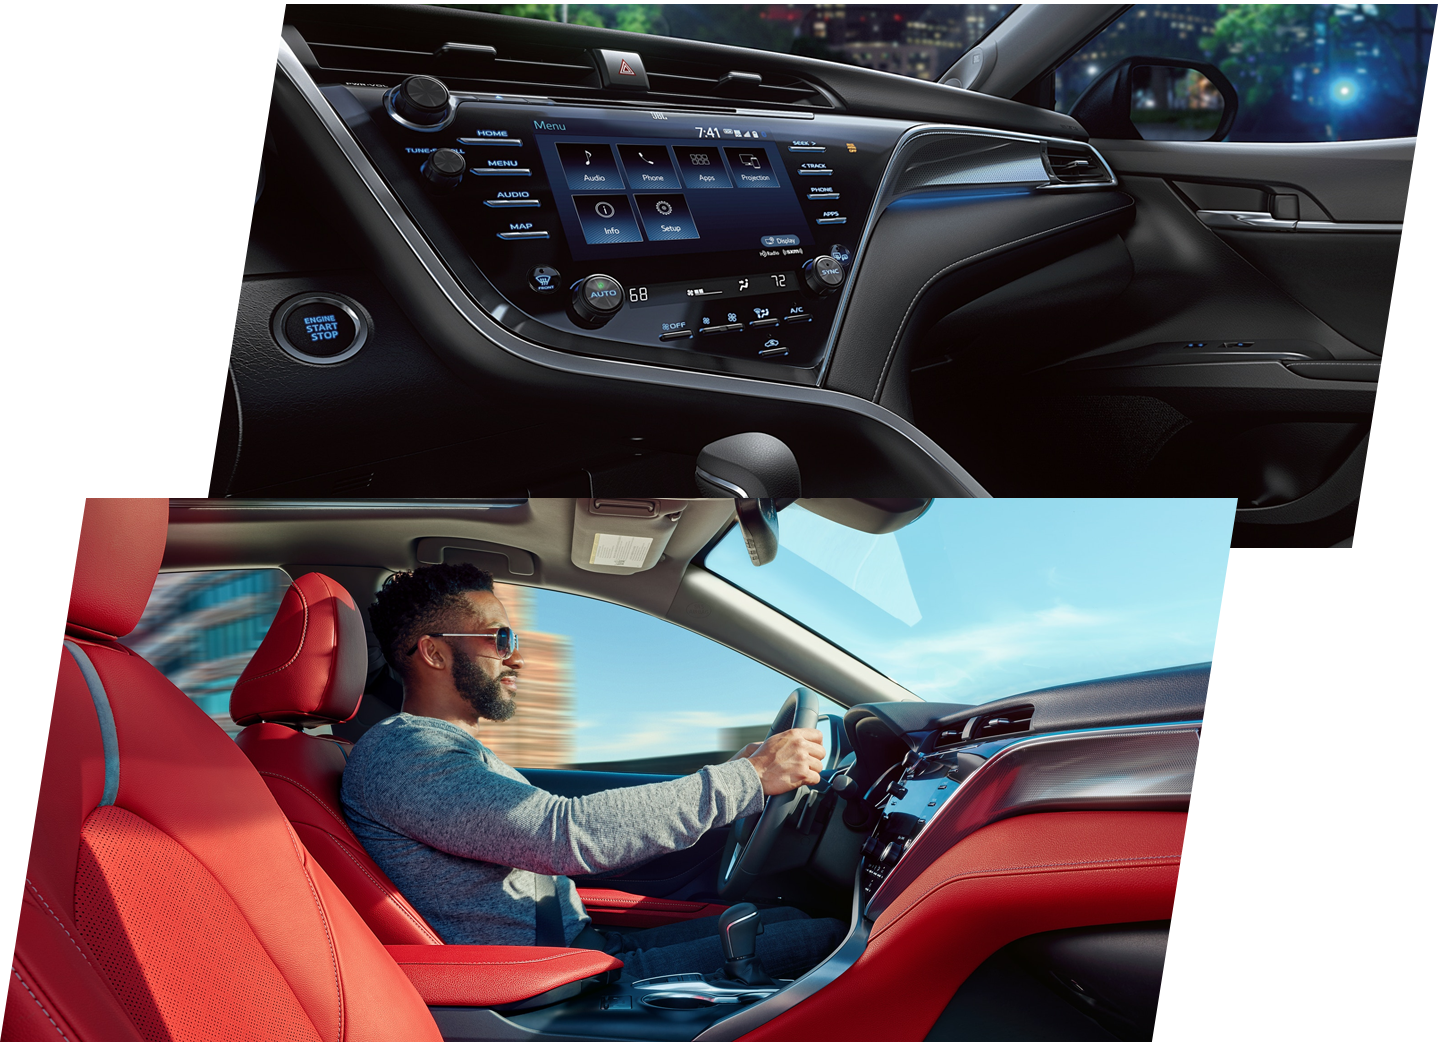 performance unleash your inner thrill seeker the 2019 toyota camry